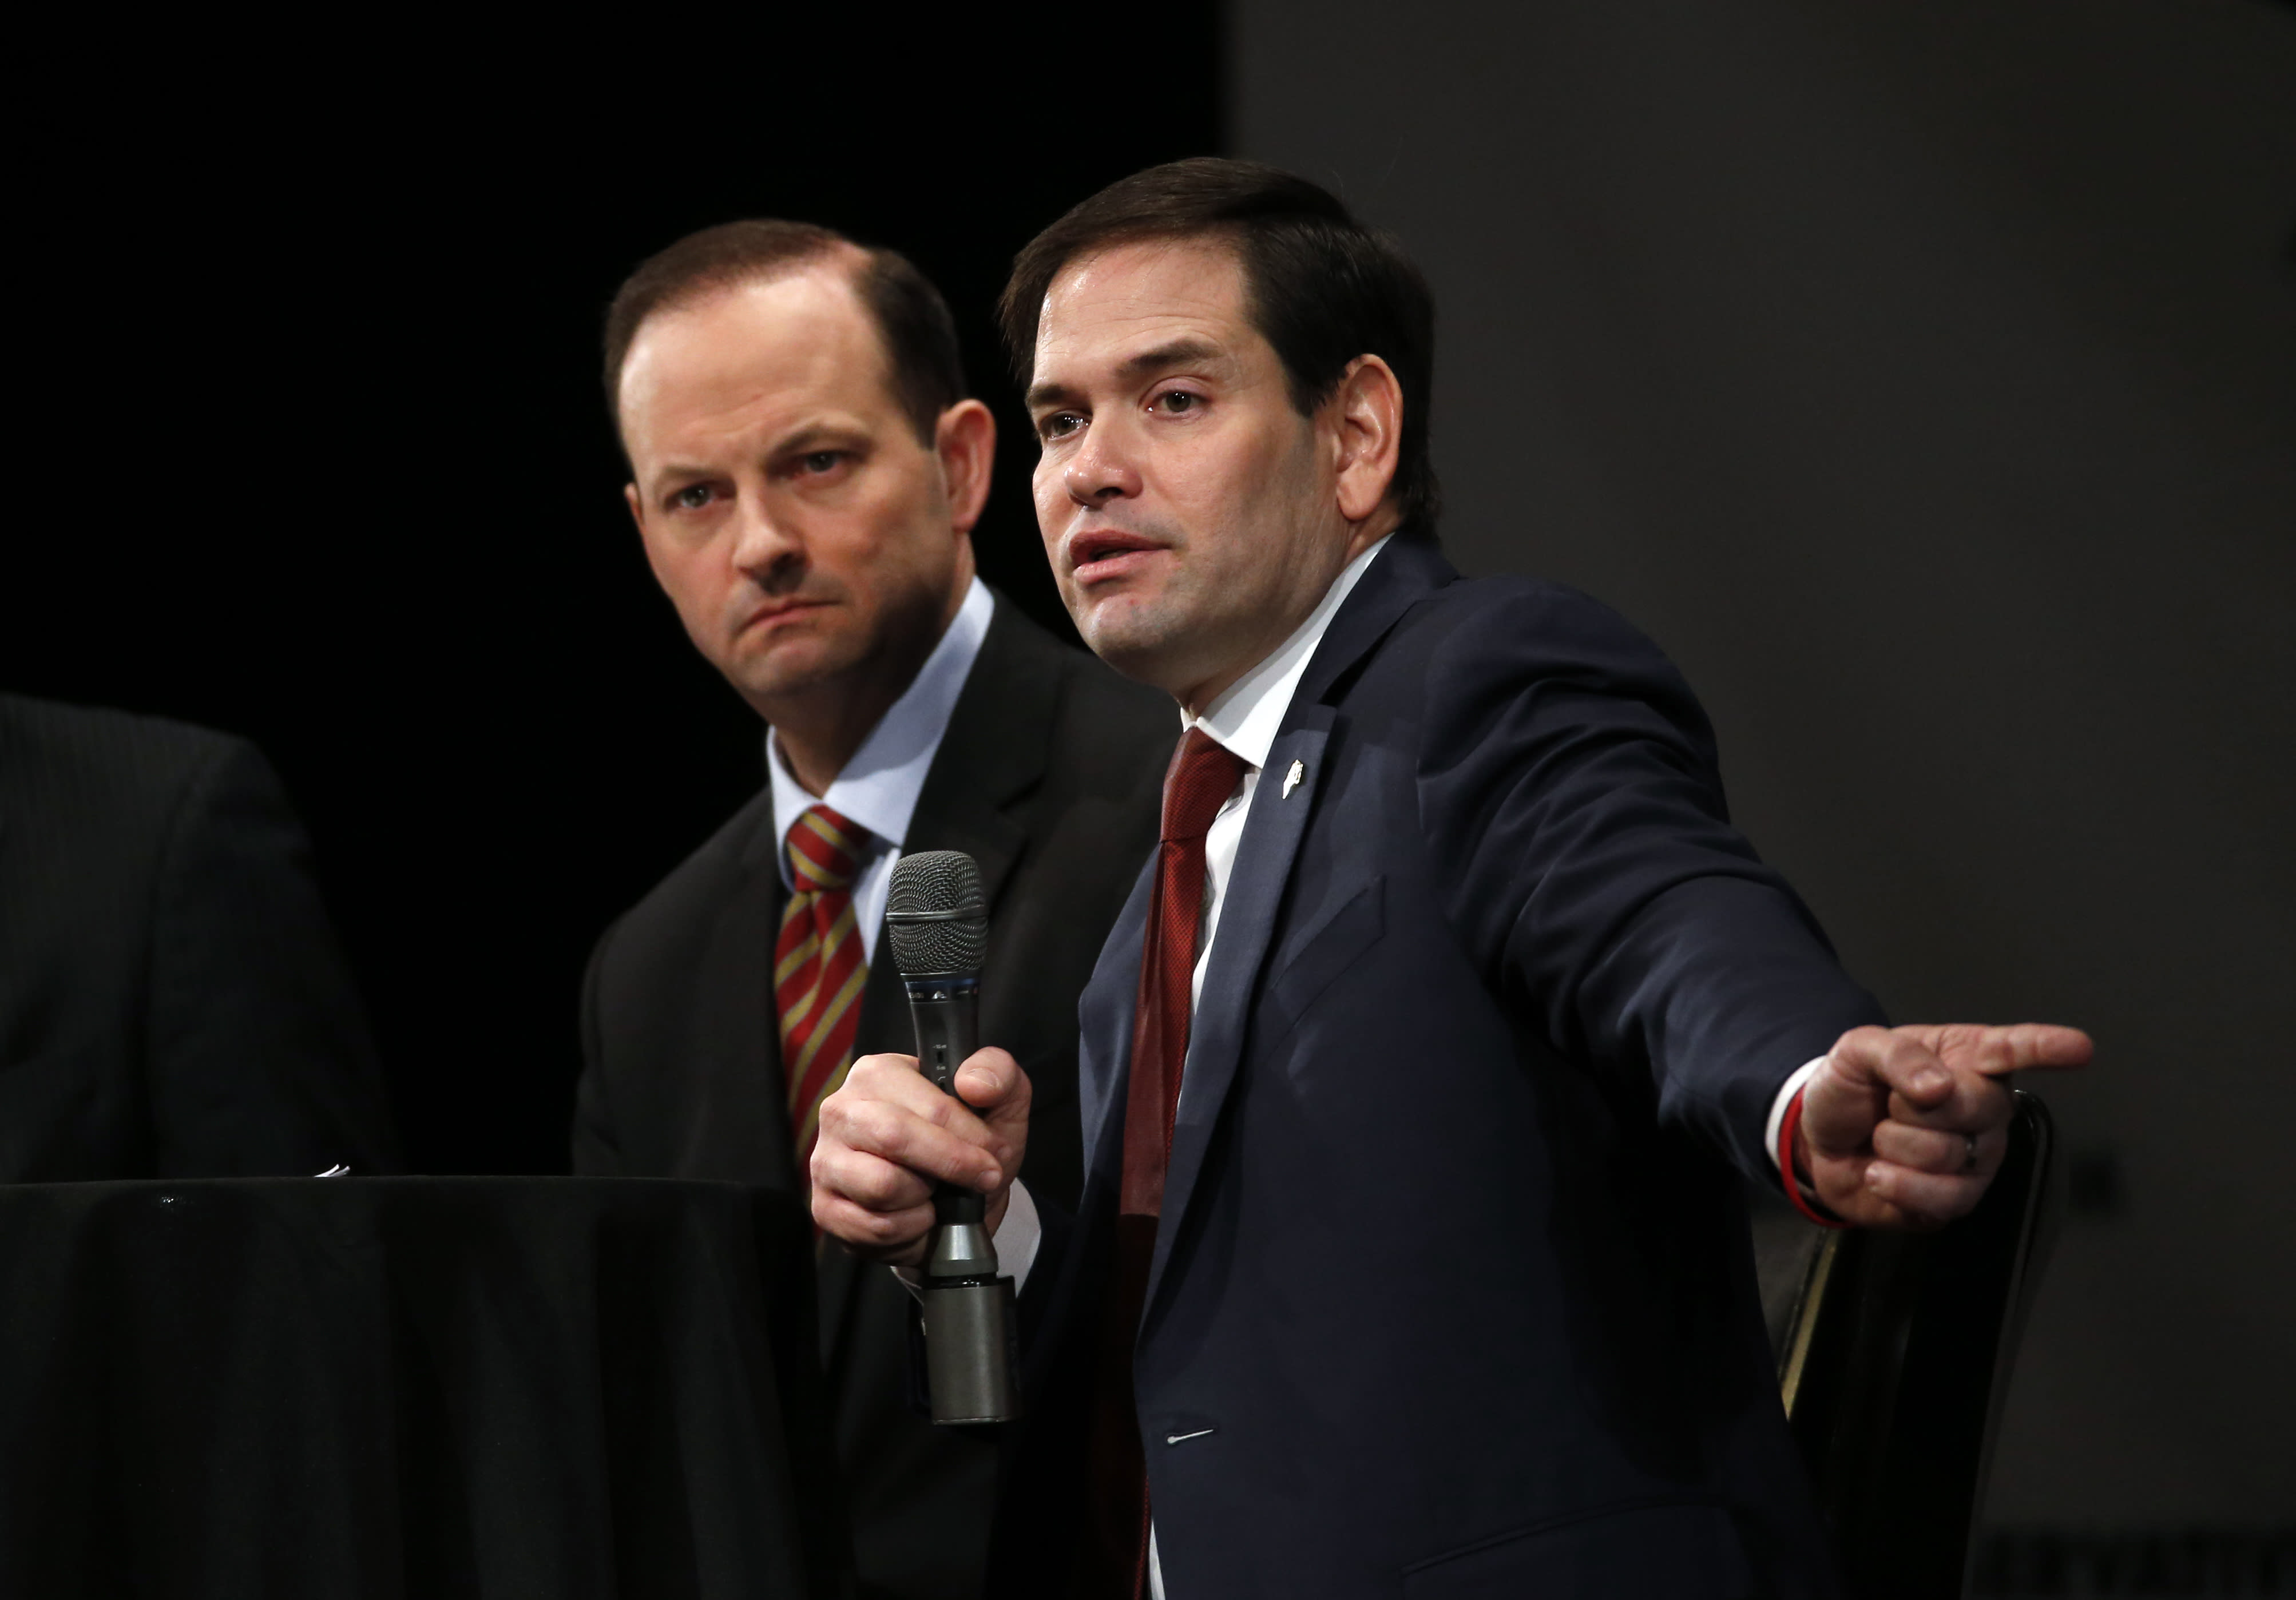 Fight night: Personal attacks, court debate for GOP hopefuls